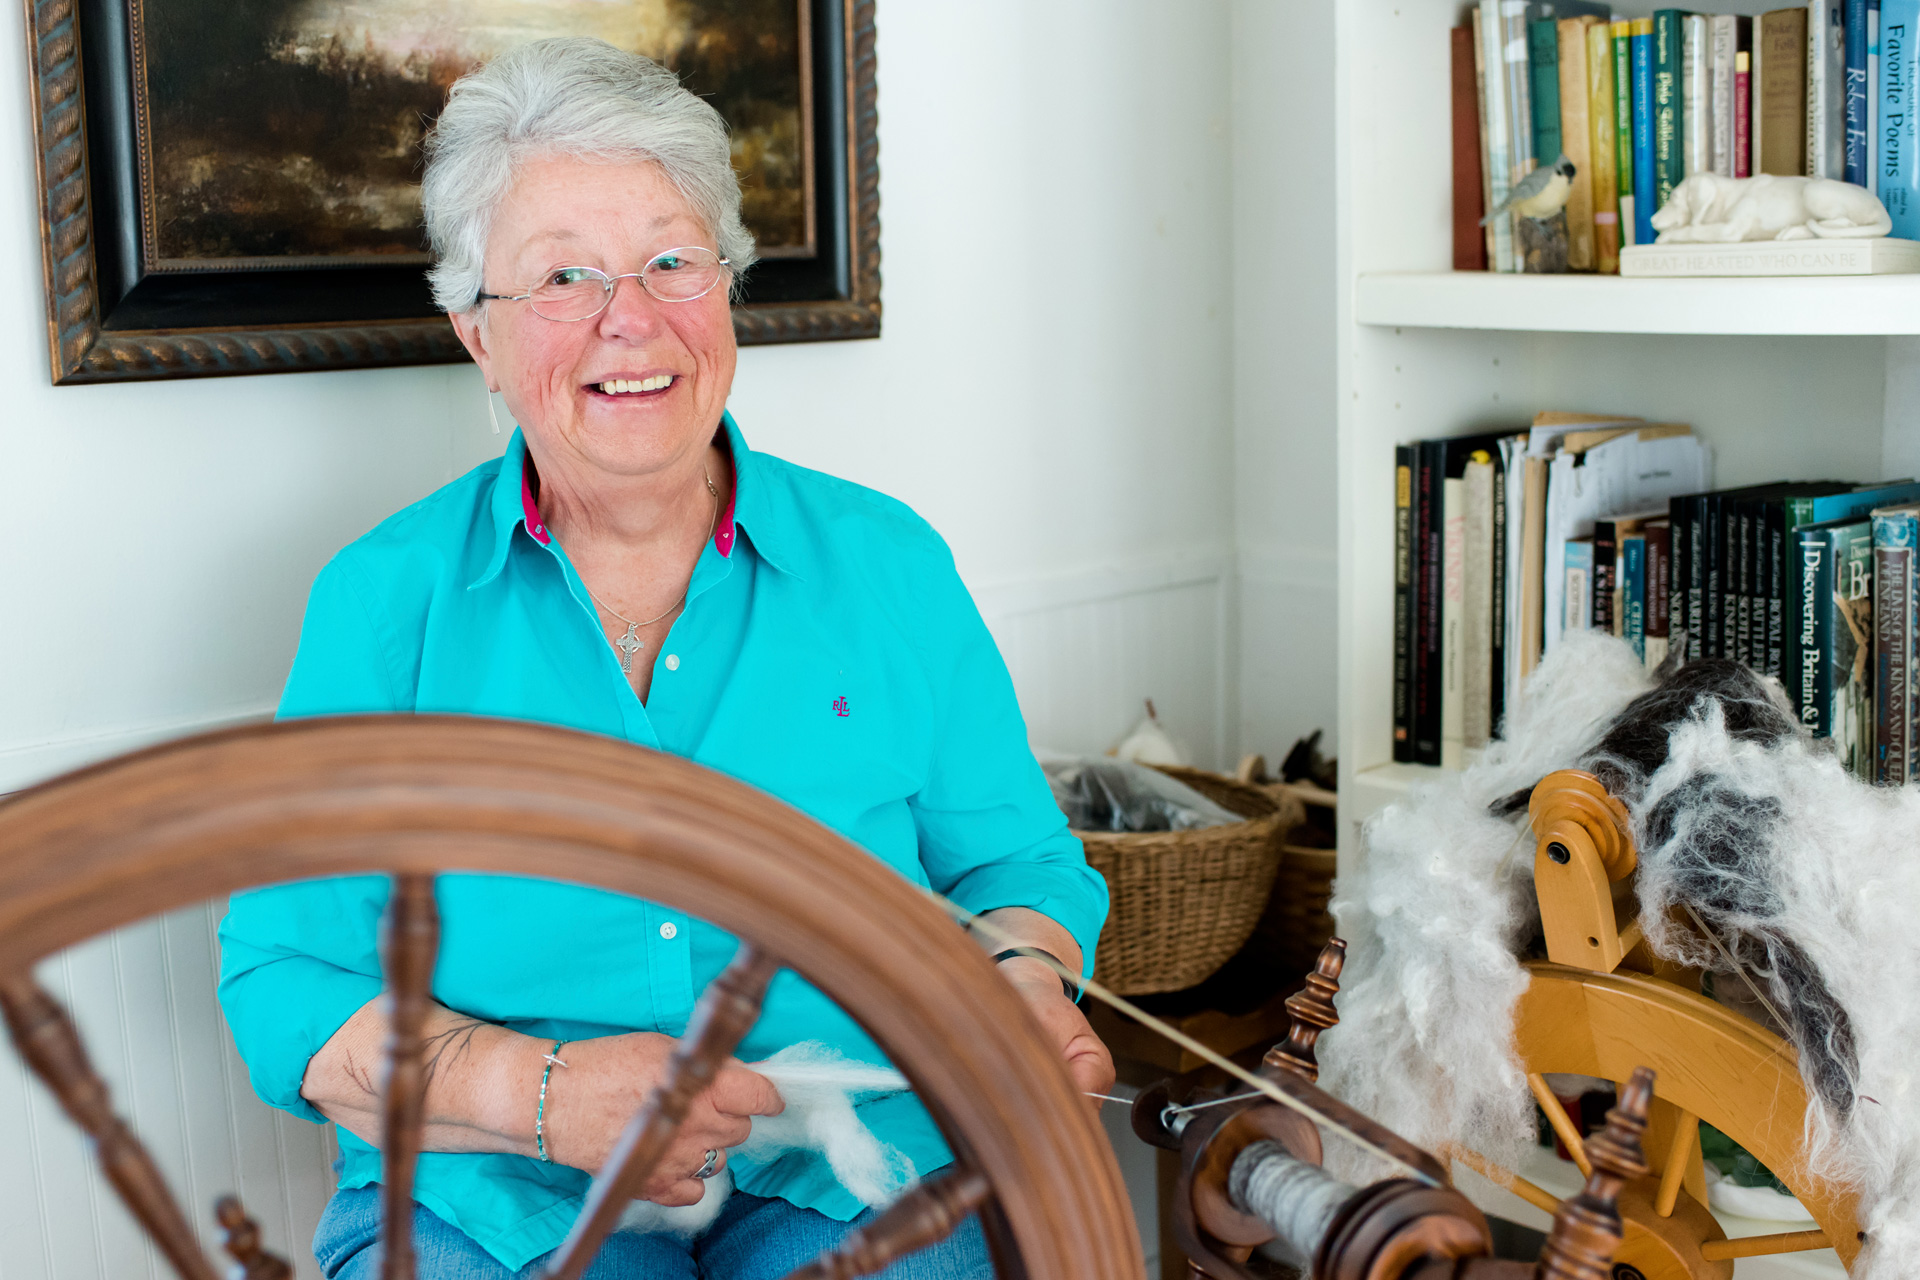 White-haired woman sspinning wool in her living room